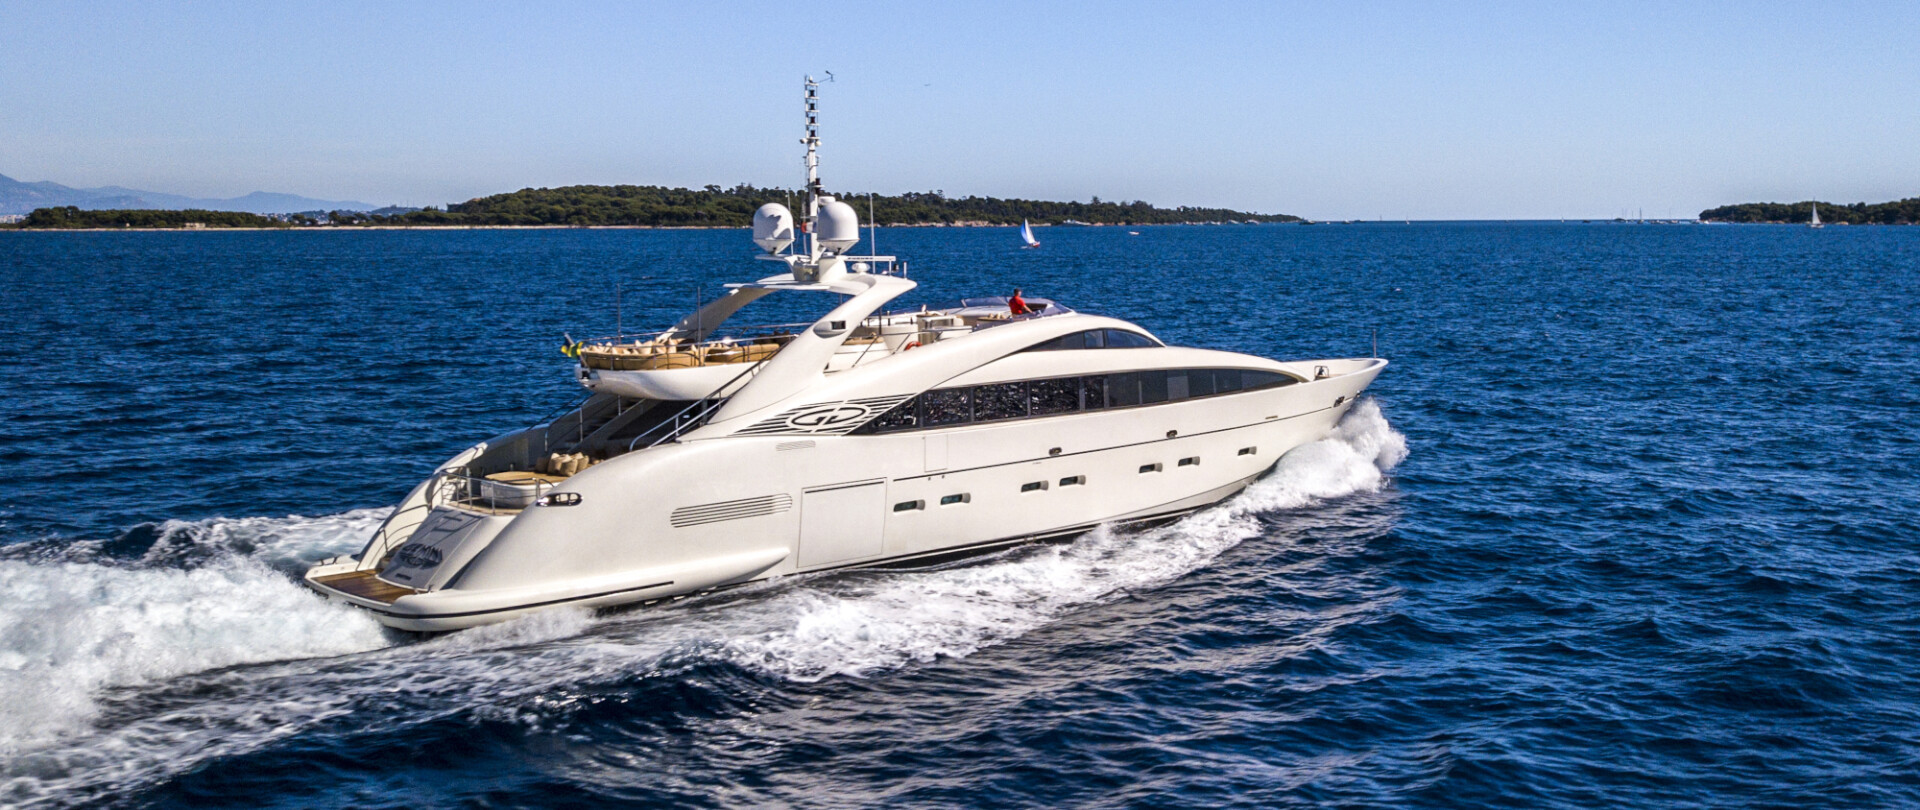 Gemini - Available for inspection during the 2019 Cannes Yachting Festival photo 1